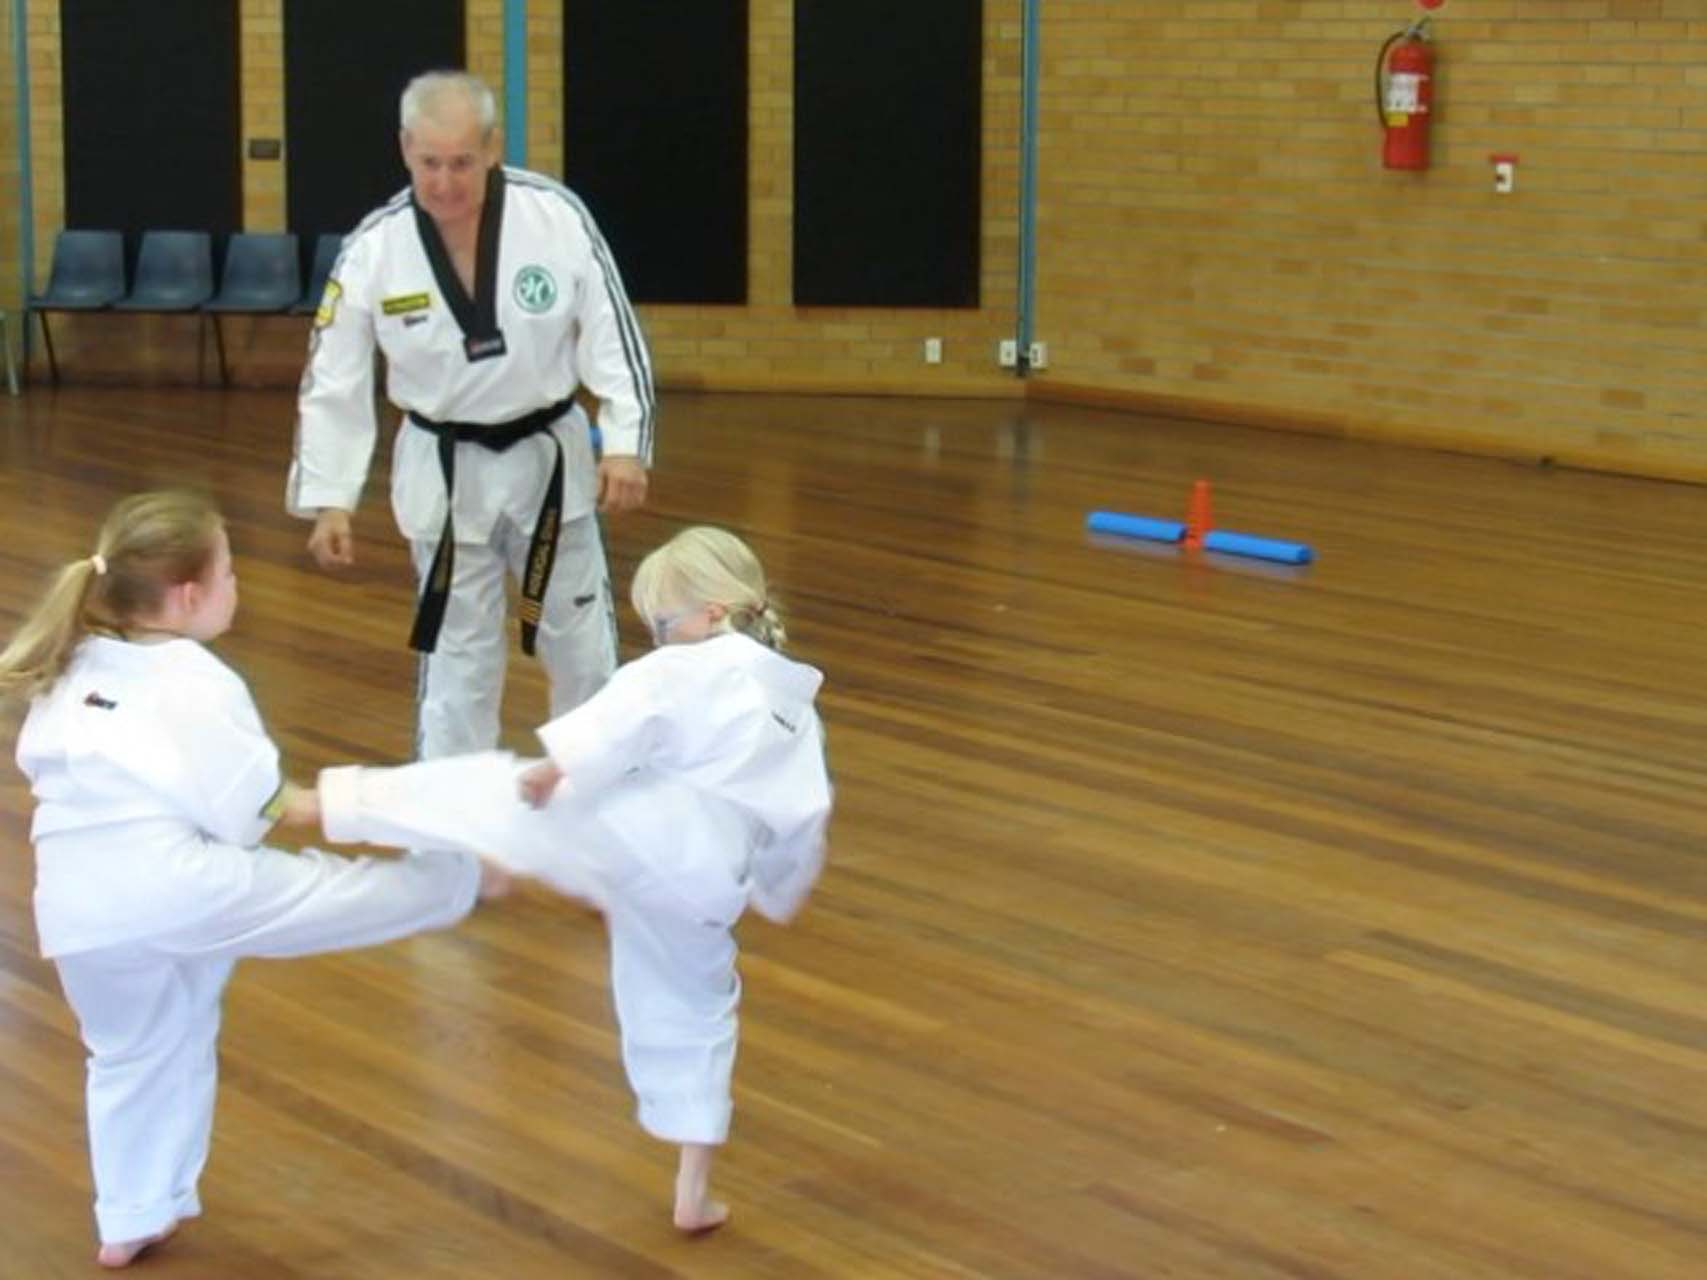 Two young martial arts girls practicing kicks in a taekwondo class in Tamworth.